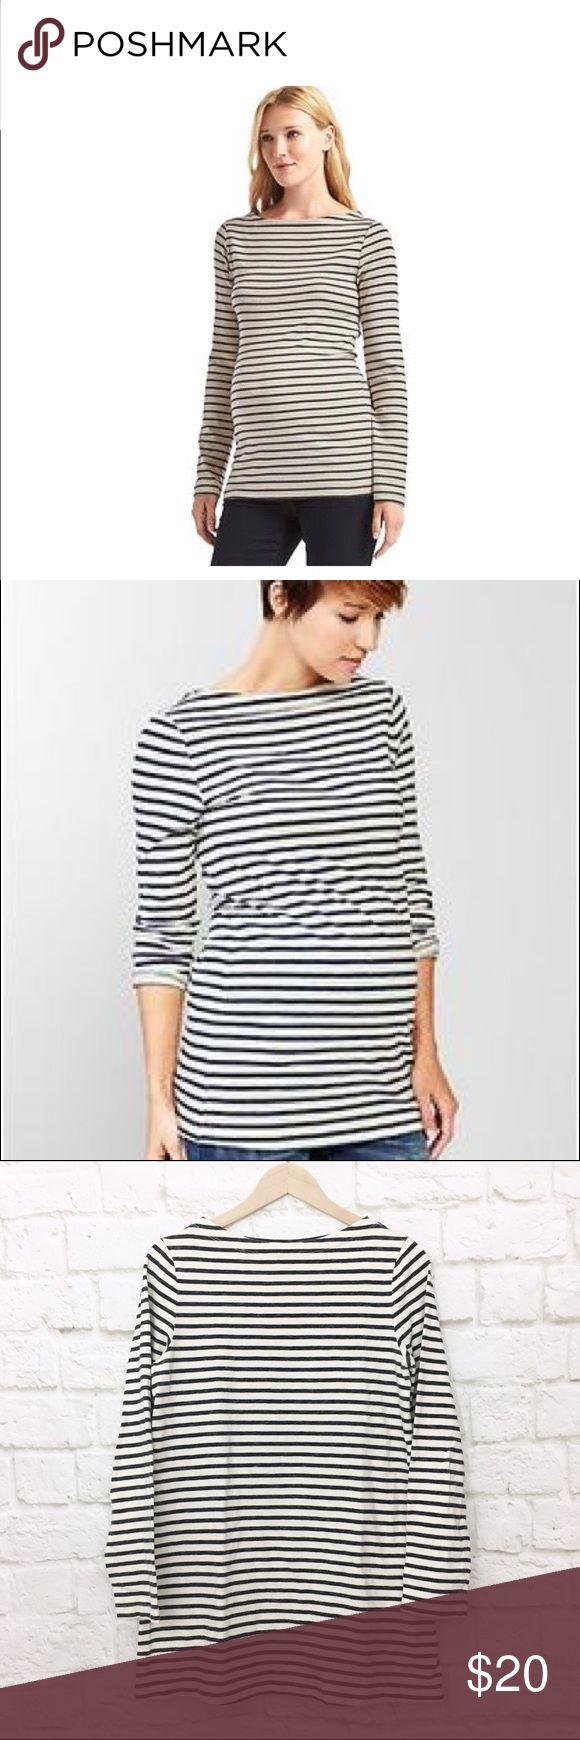 """Gap maternity striped boat neck tunic Very cute and versatile tunic. Mid weight knit fabric, perfect for ladies who are due this winter! Size Medium.  Bust 36"""", length 30"""". GAP Tops Tunics"""